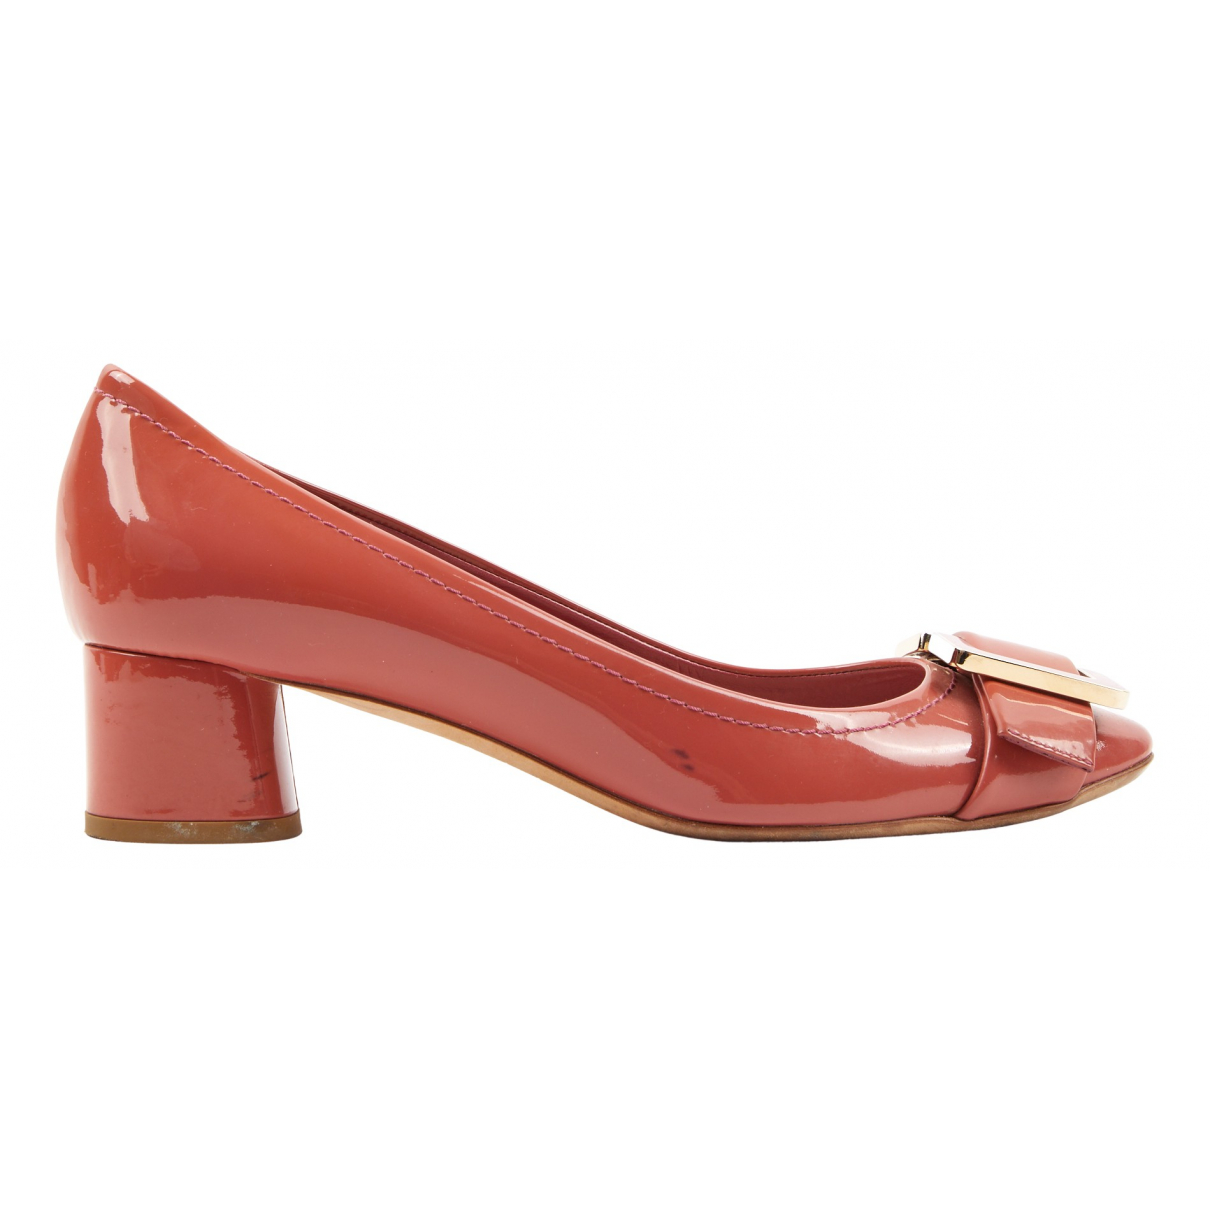 Christian Dior N Pink Patent leather Heels for Women 39.5 EU